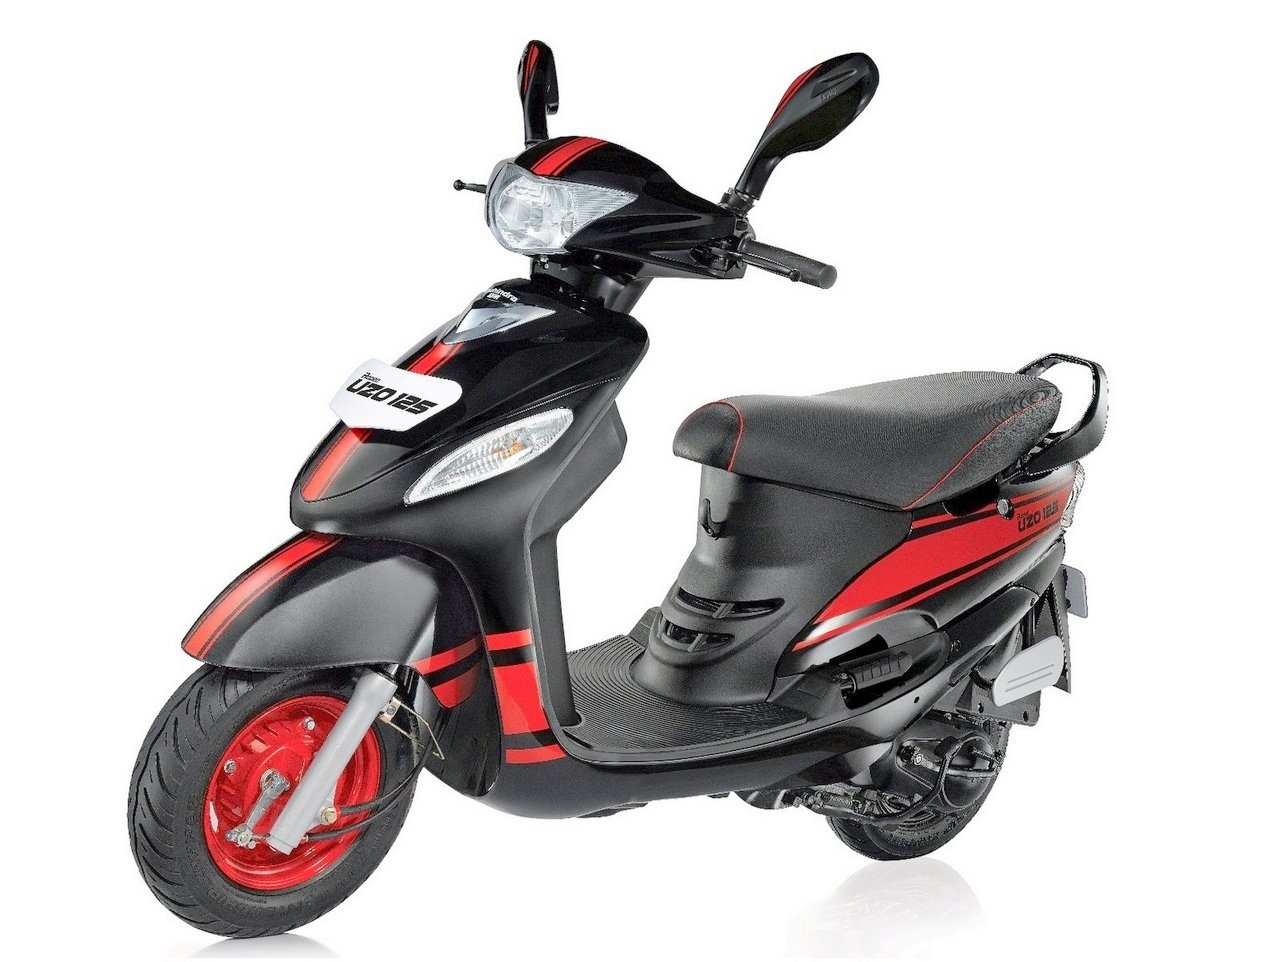 Mahindra Rodeo UZO 125 launched at Rs. 47,957